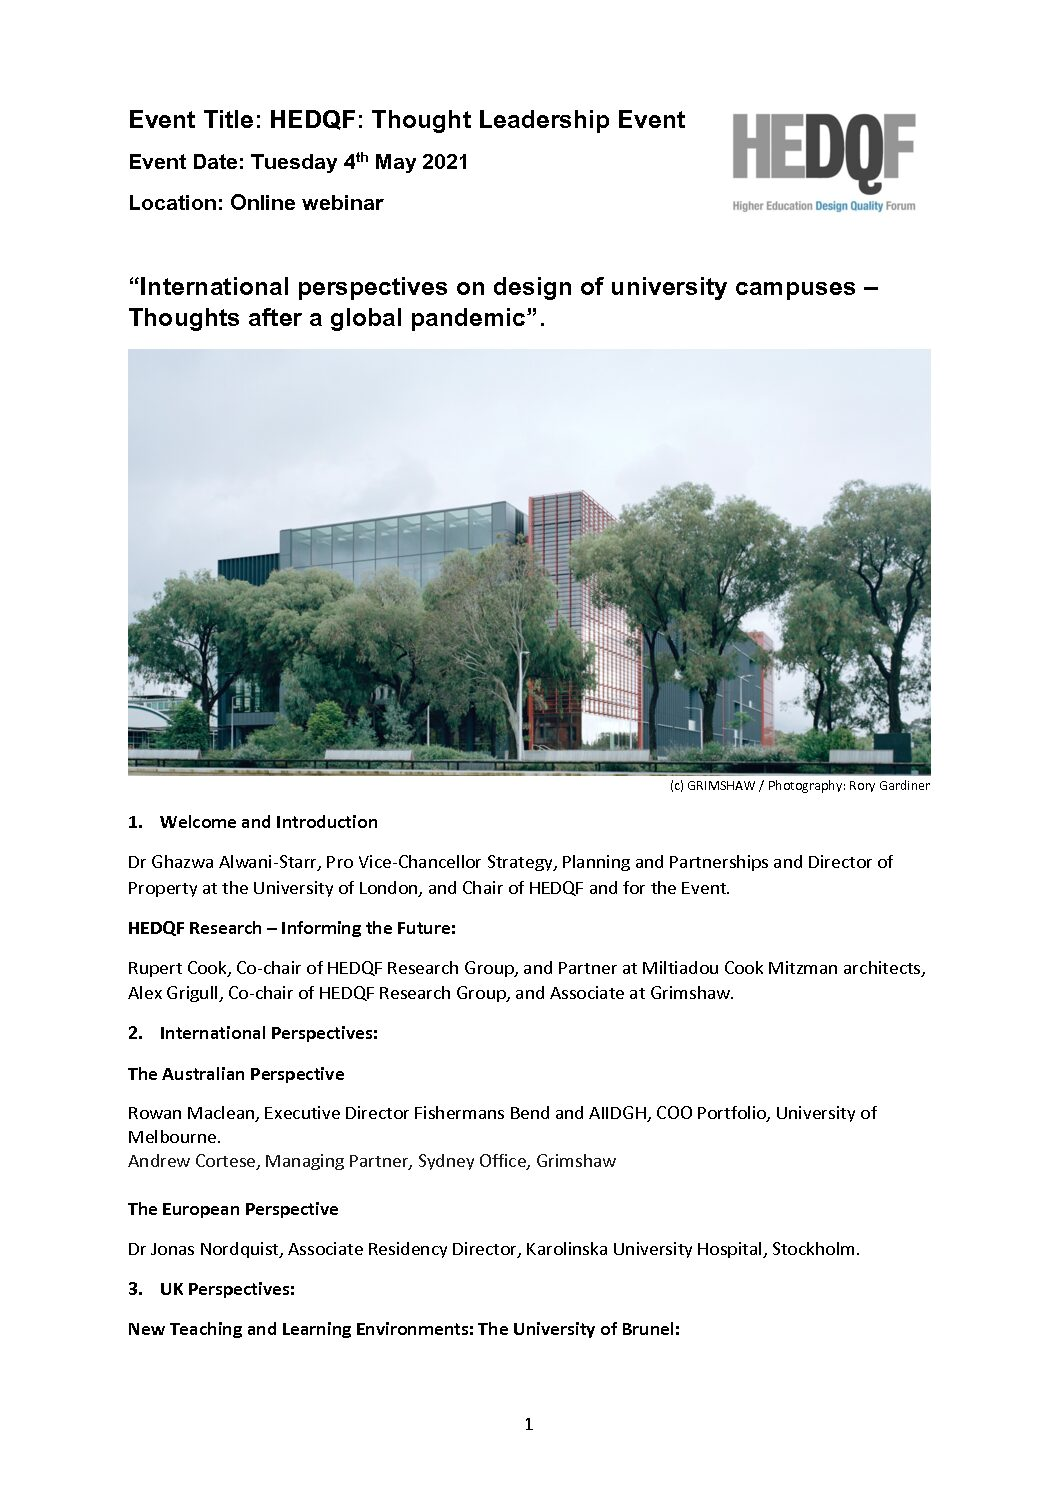 International perspectives on design of university campuses – Thoughts after a global pandemic 4/5/2021